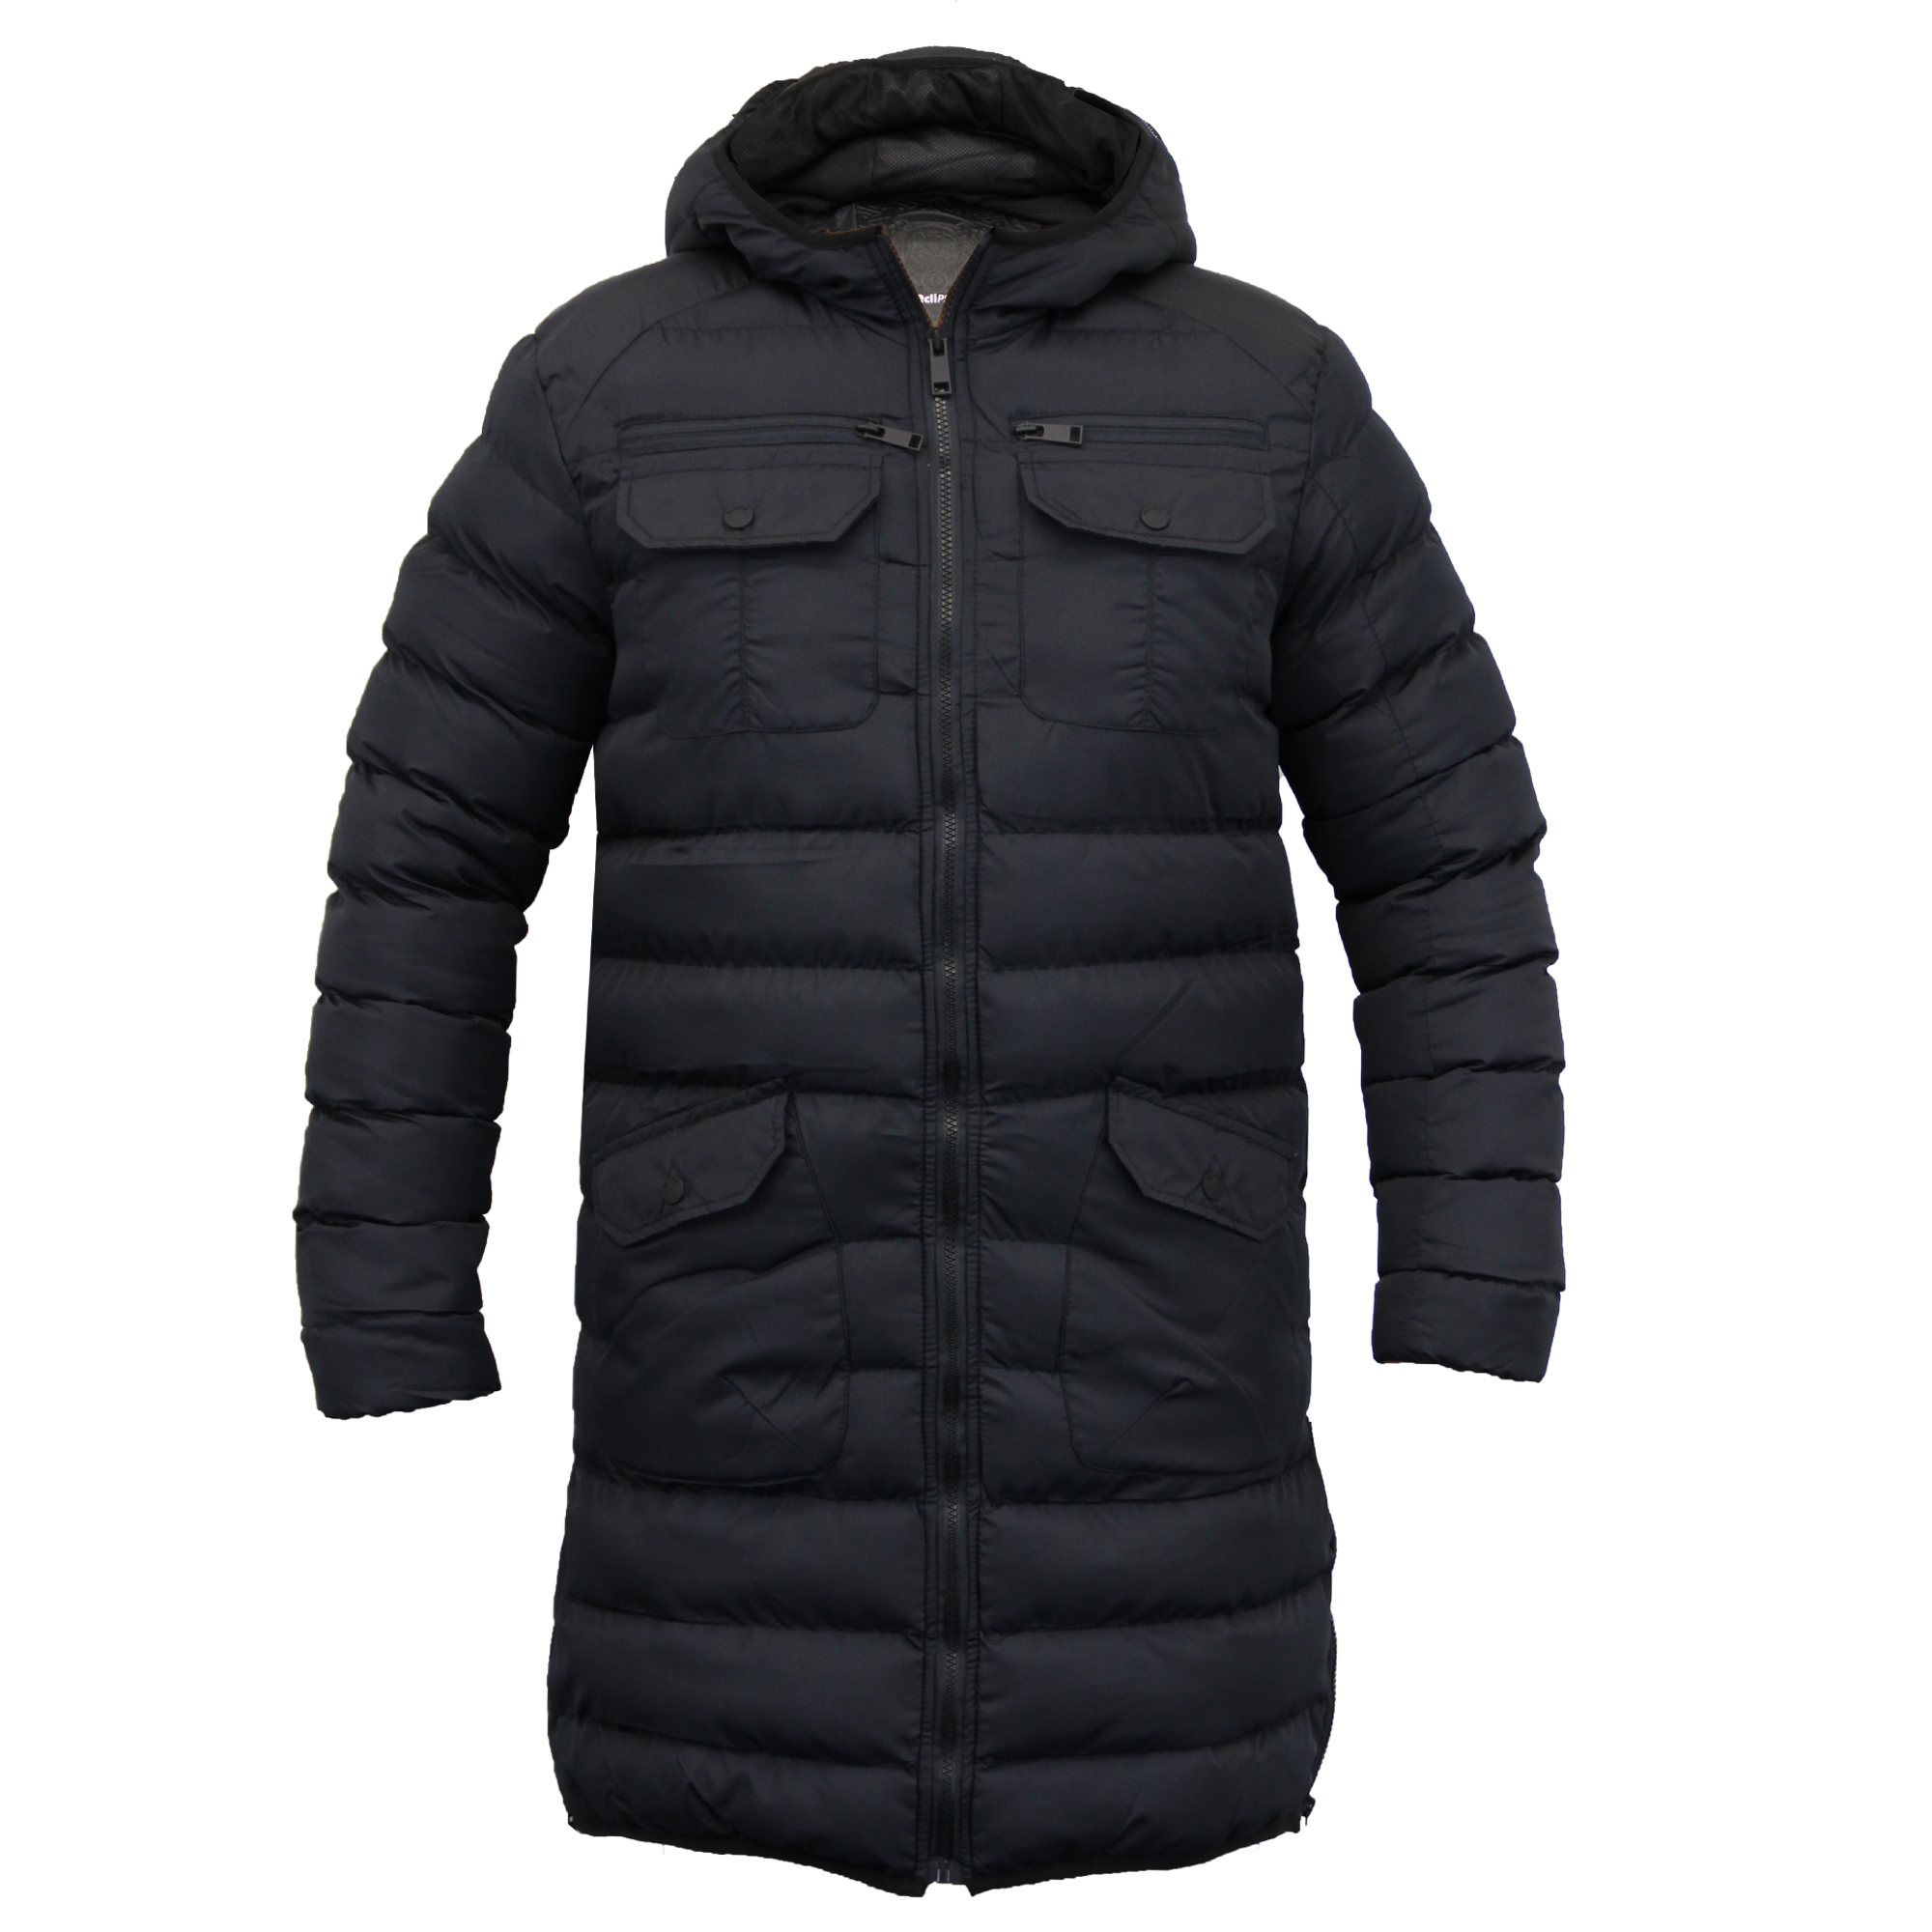 Mens Jacket Eclipse Long Coat Padded Quilted Mesh Hooded Lined ... : long black quilted coat - Adamdwight.com